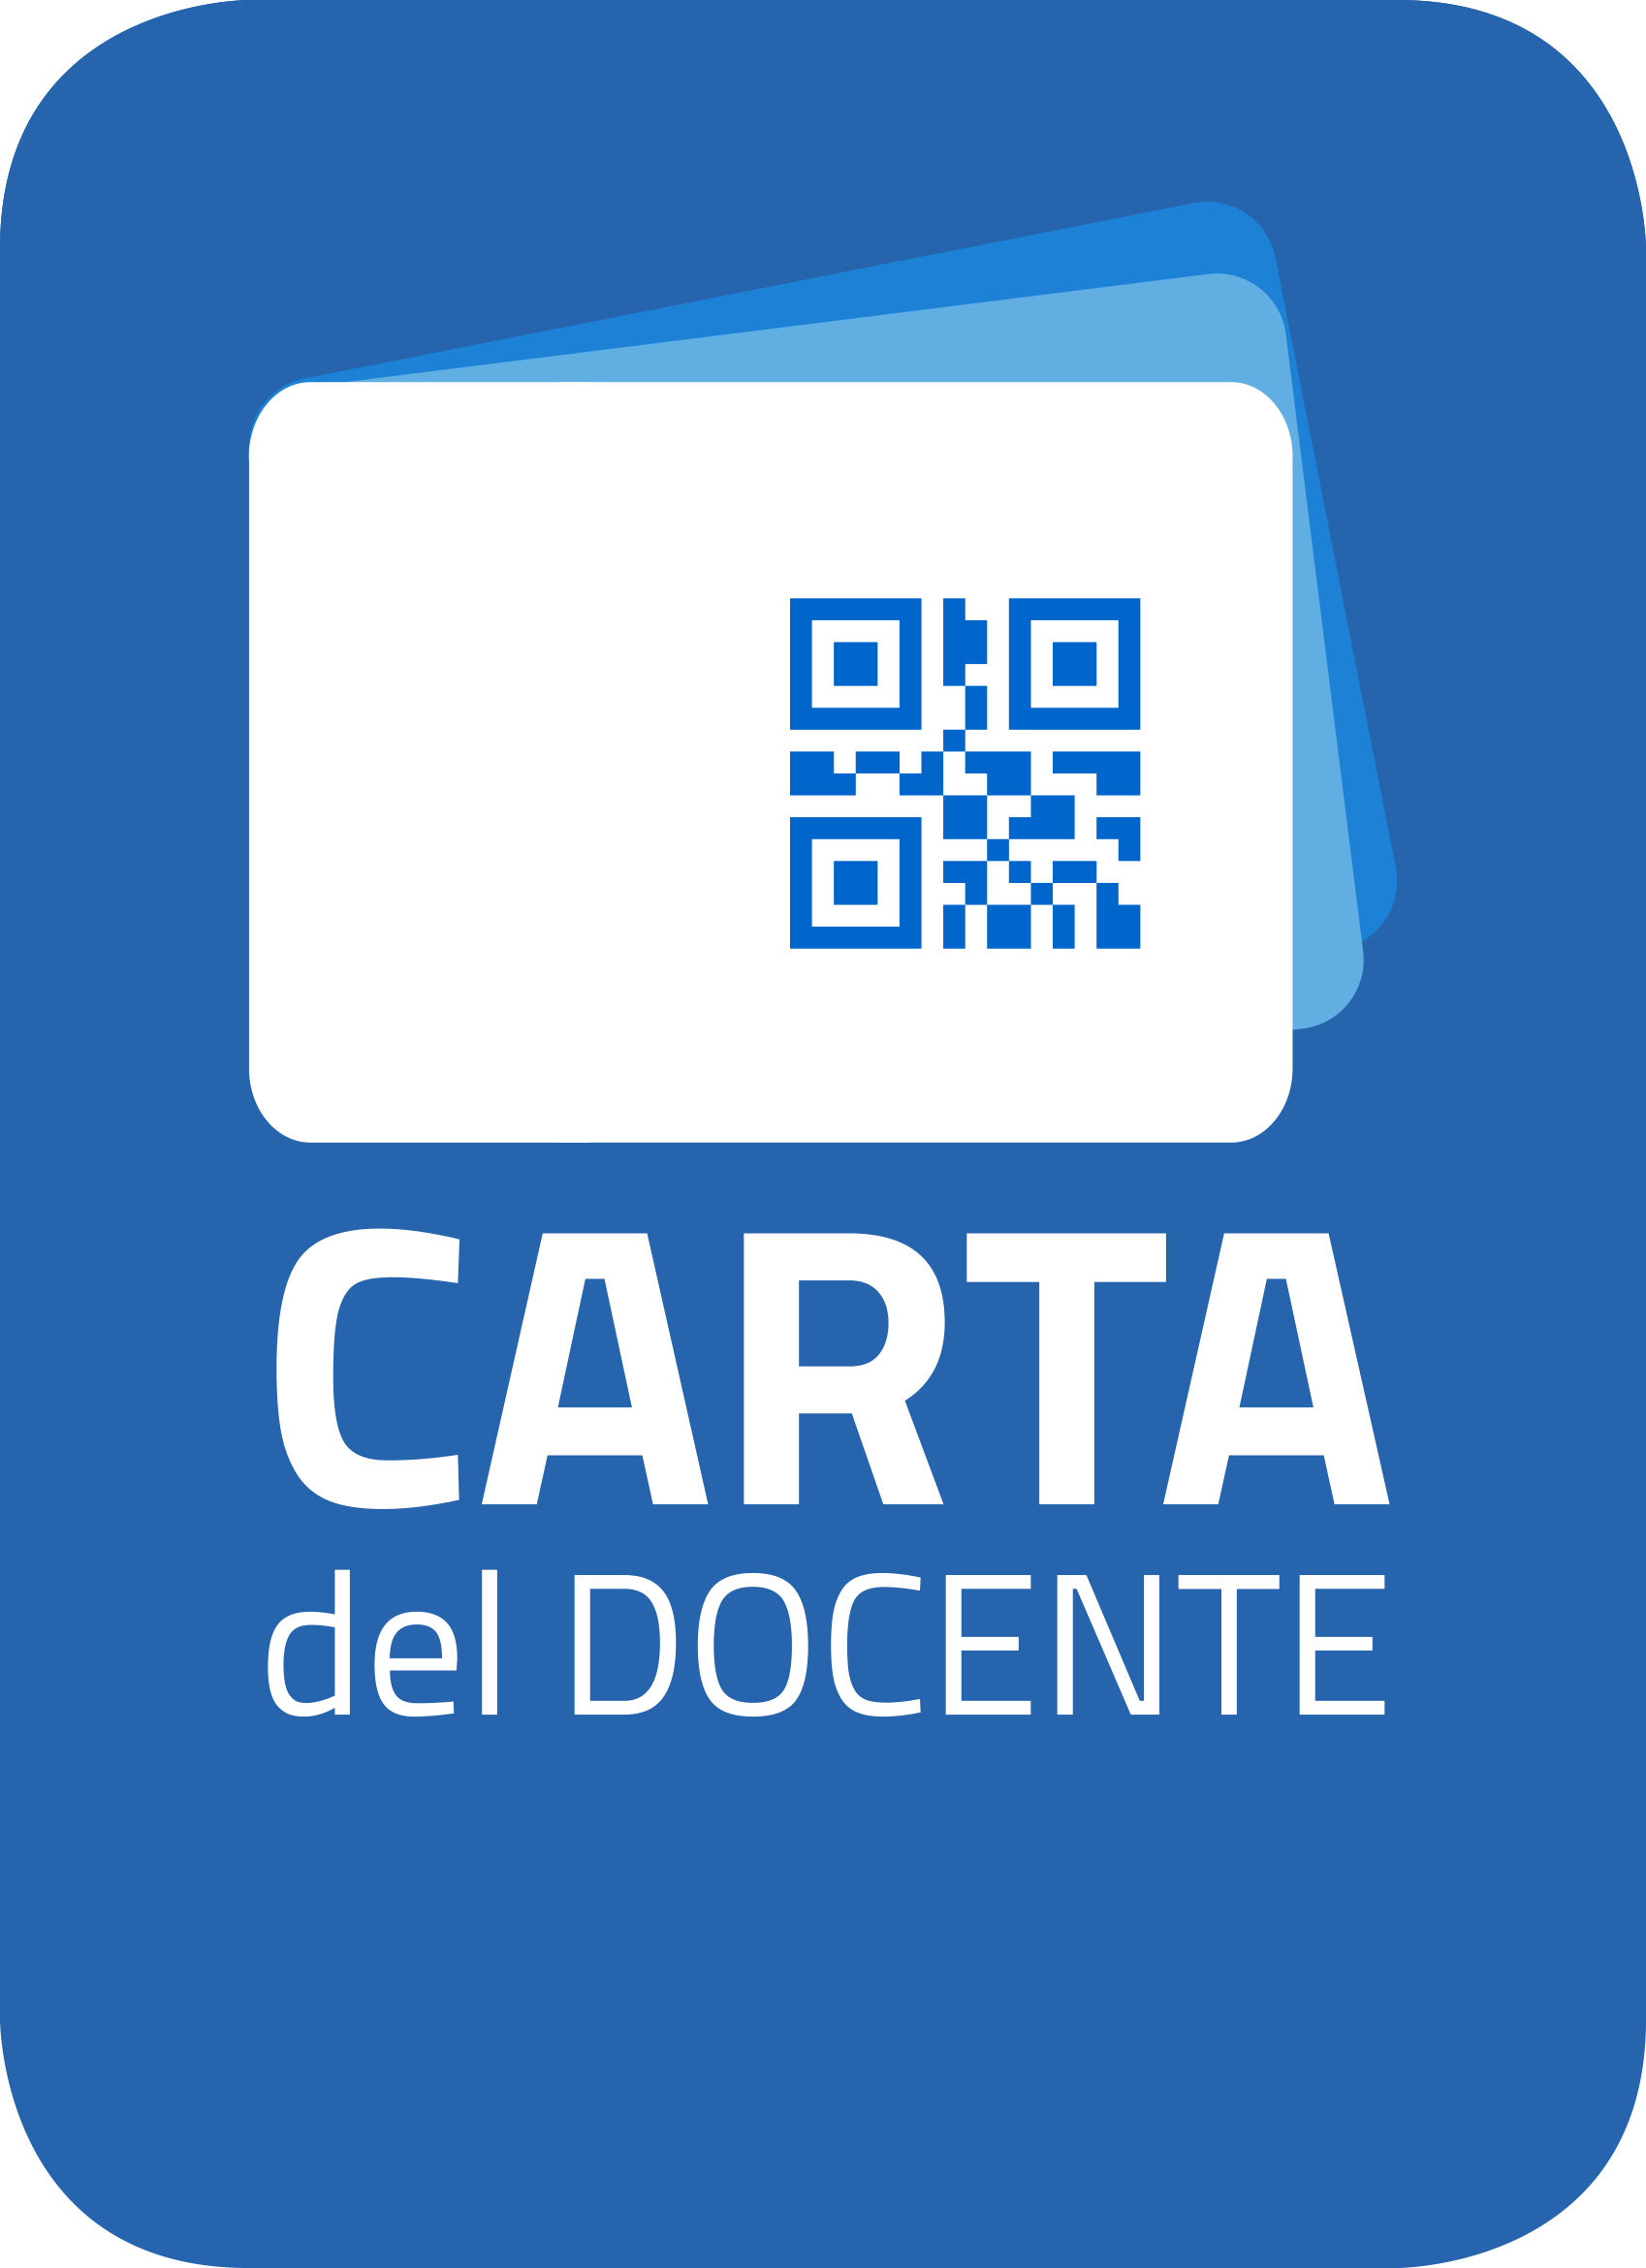 Carta-del-docente-sticker